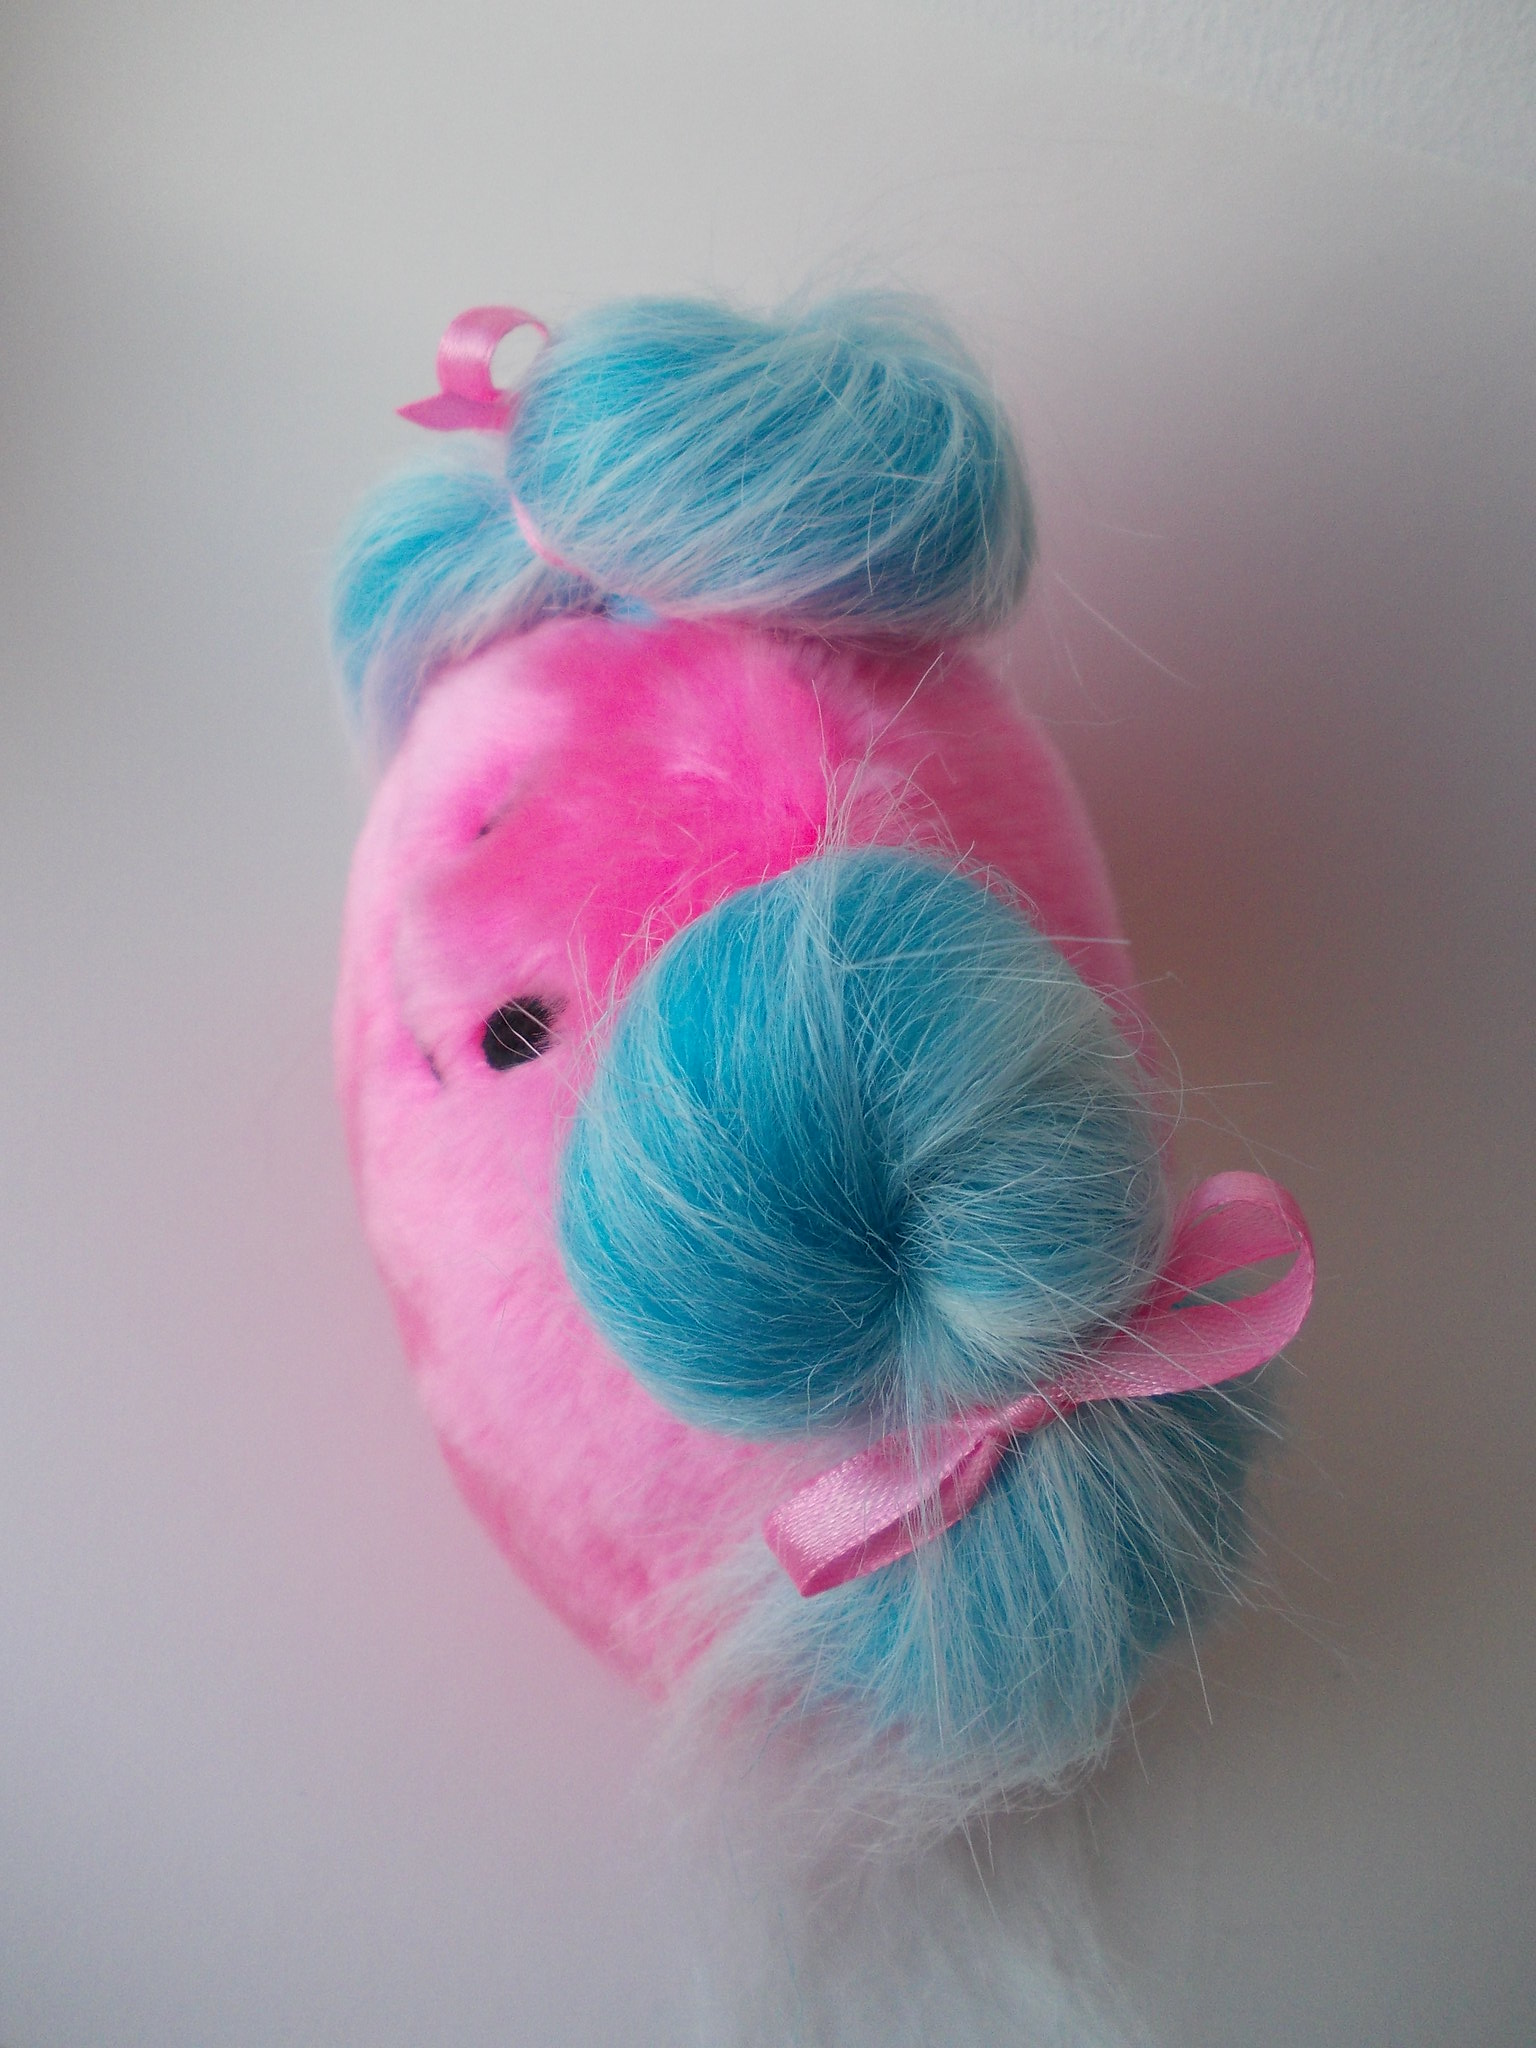 Cute toy, cute monster, kawaii monster, kawaii princess, pink blue toy, blue hair toy, blue hair princess, warm fuzzies 81